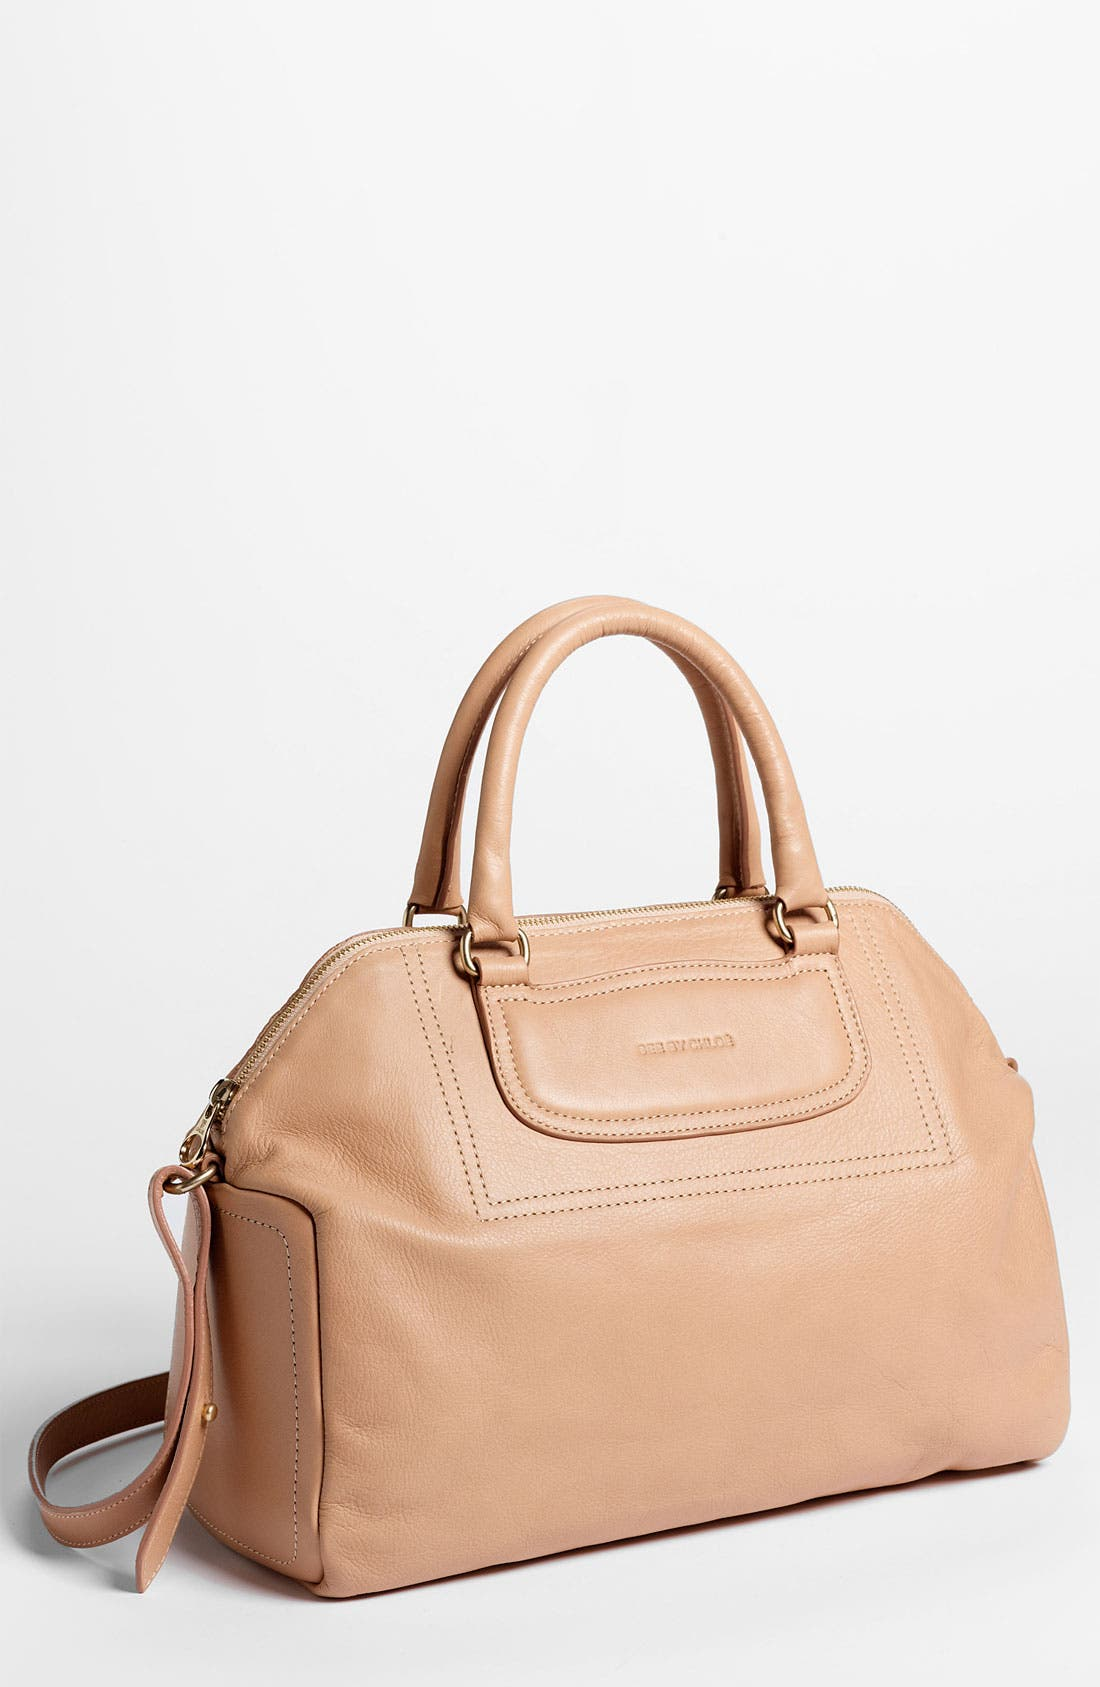 Main Image - See By Chloé 'Albane - Medium' Satchel